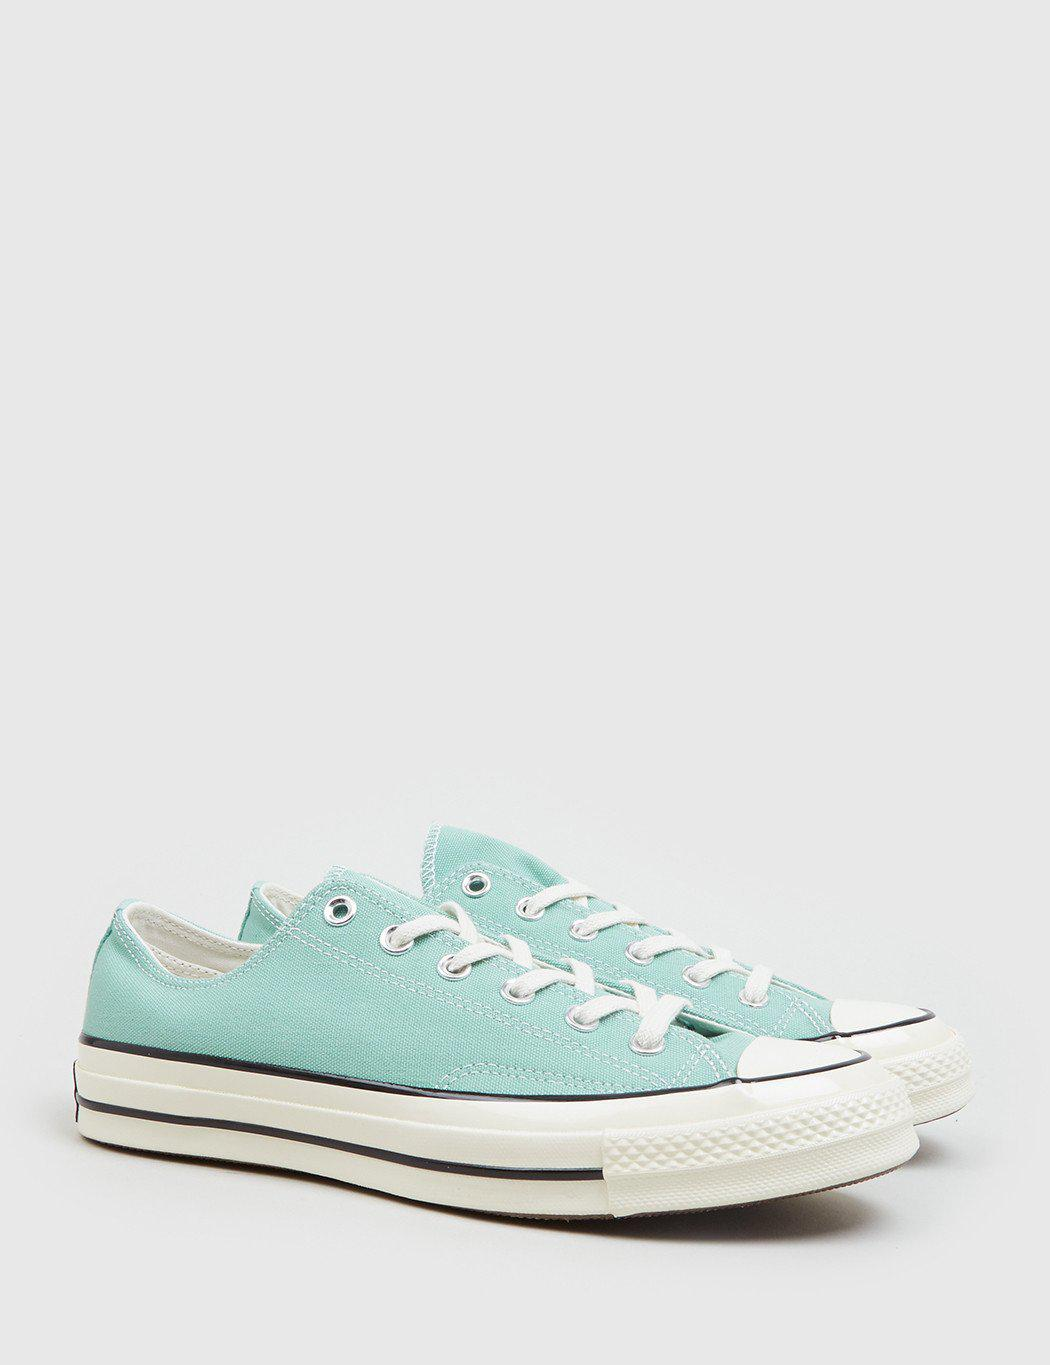 Lyst - Converse 70 s Chuck Taylor Low (canvas) in Green for Men e33a353ab